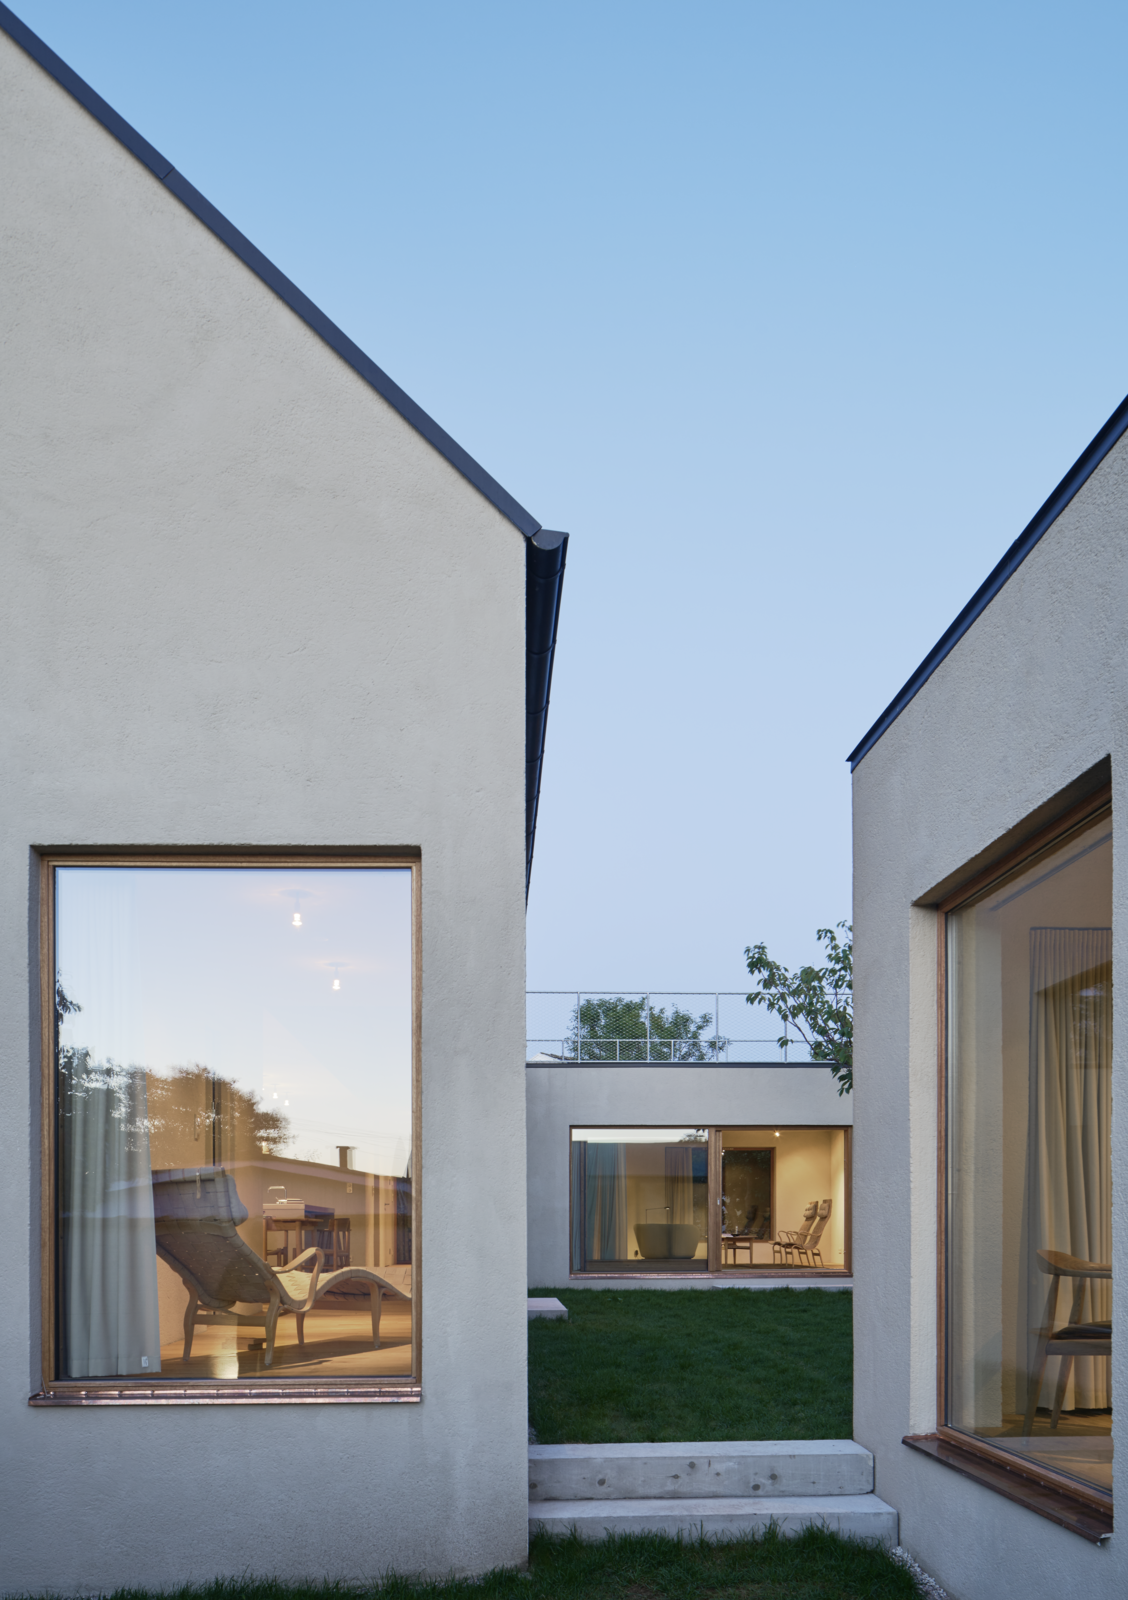 Sleek Scandinavian Design Permeates A Family S Summer House In An Old Fishing Village In 2020 Courtyard House House Designs Exterior House Exterior